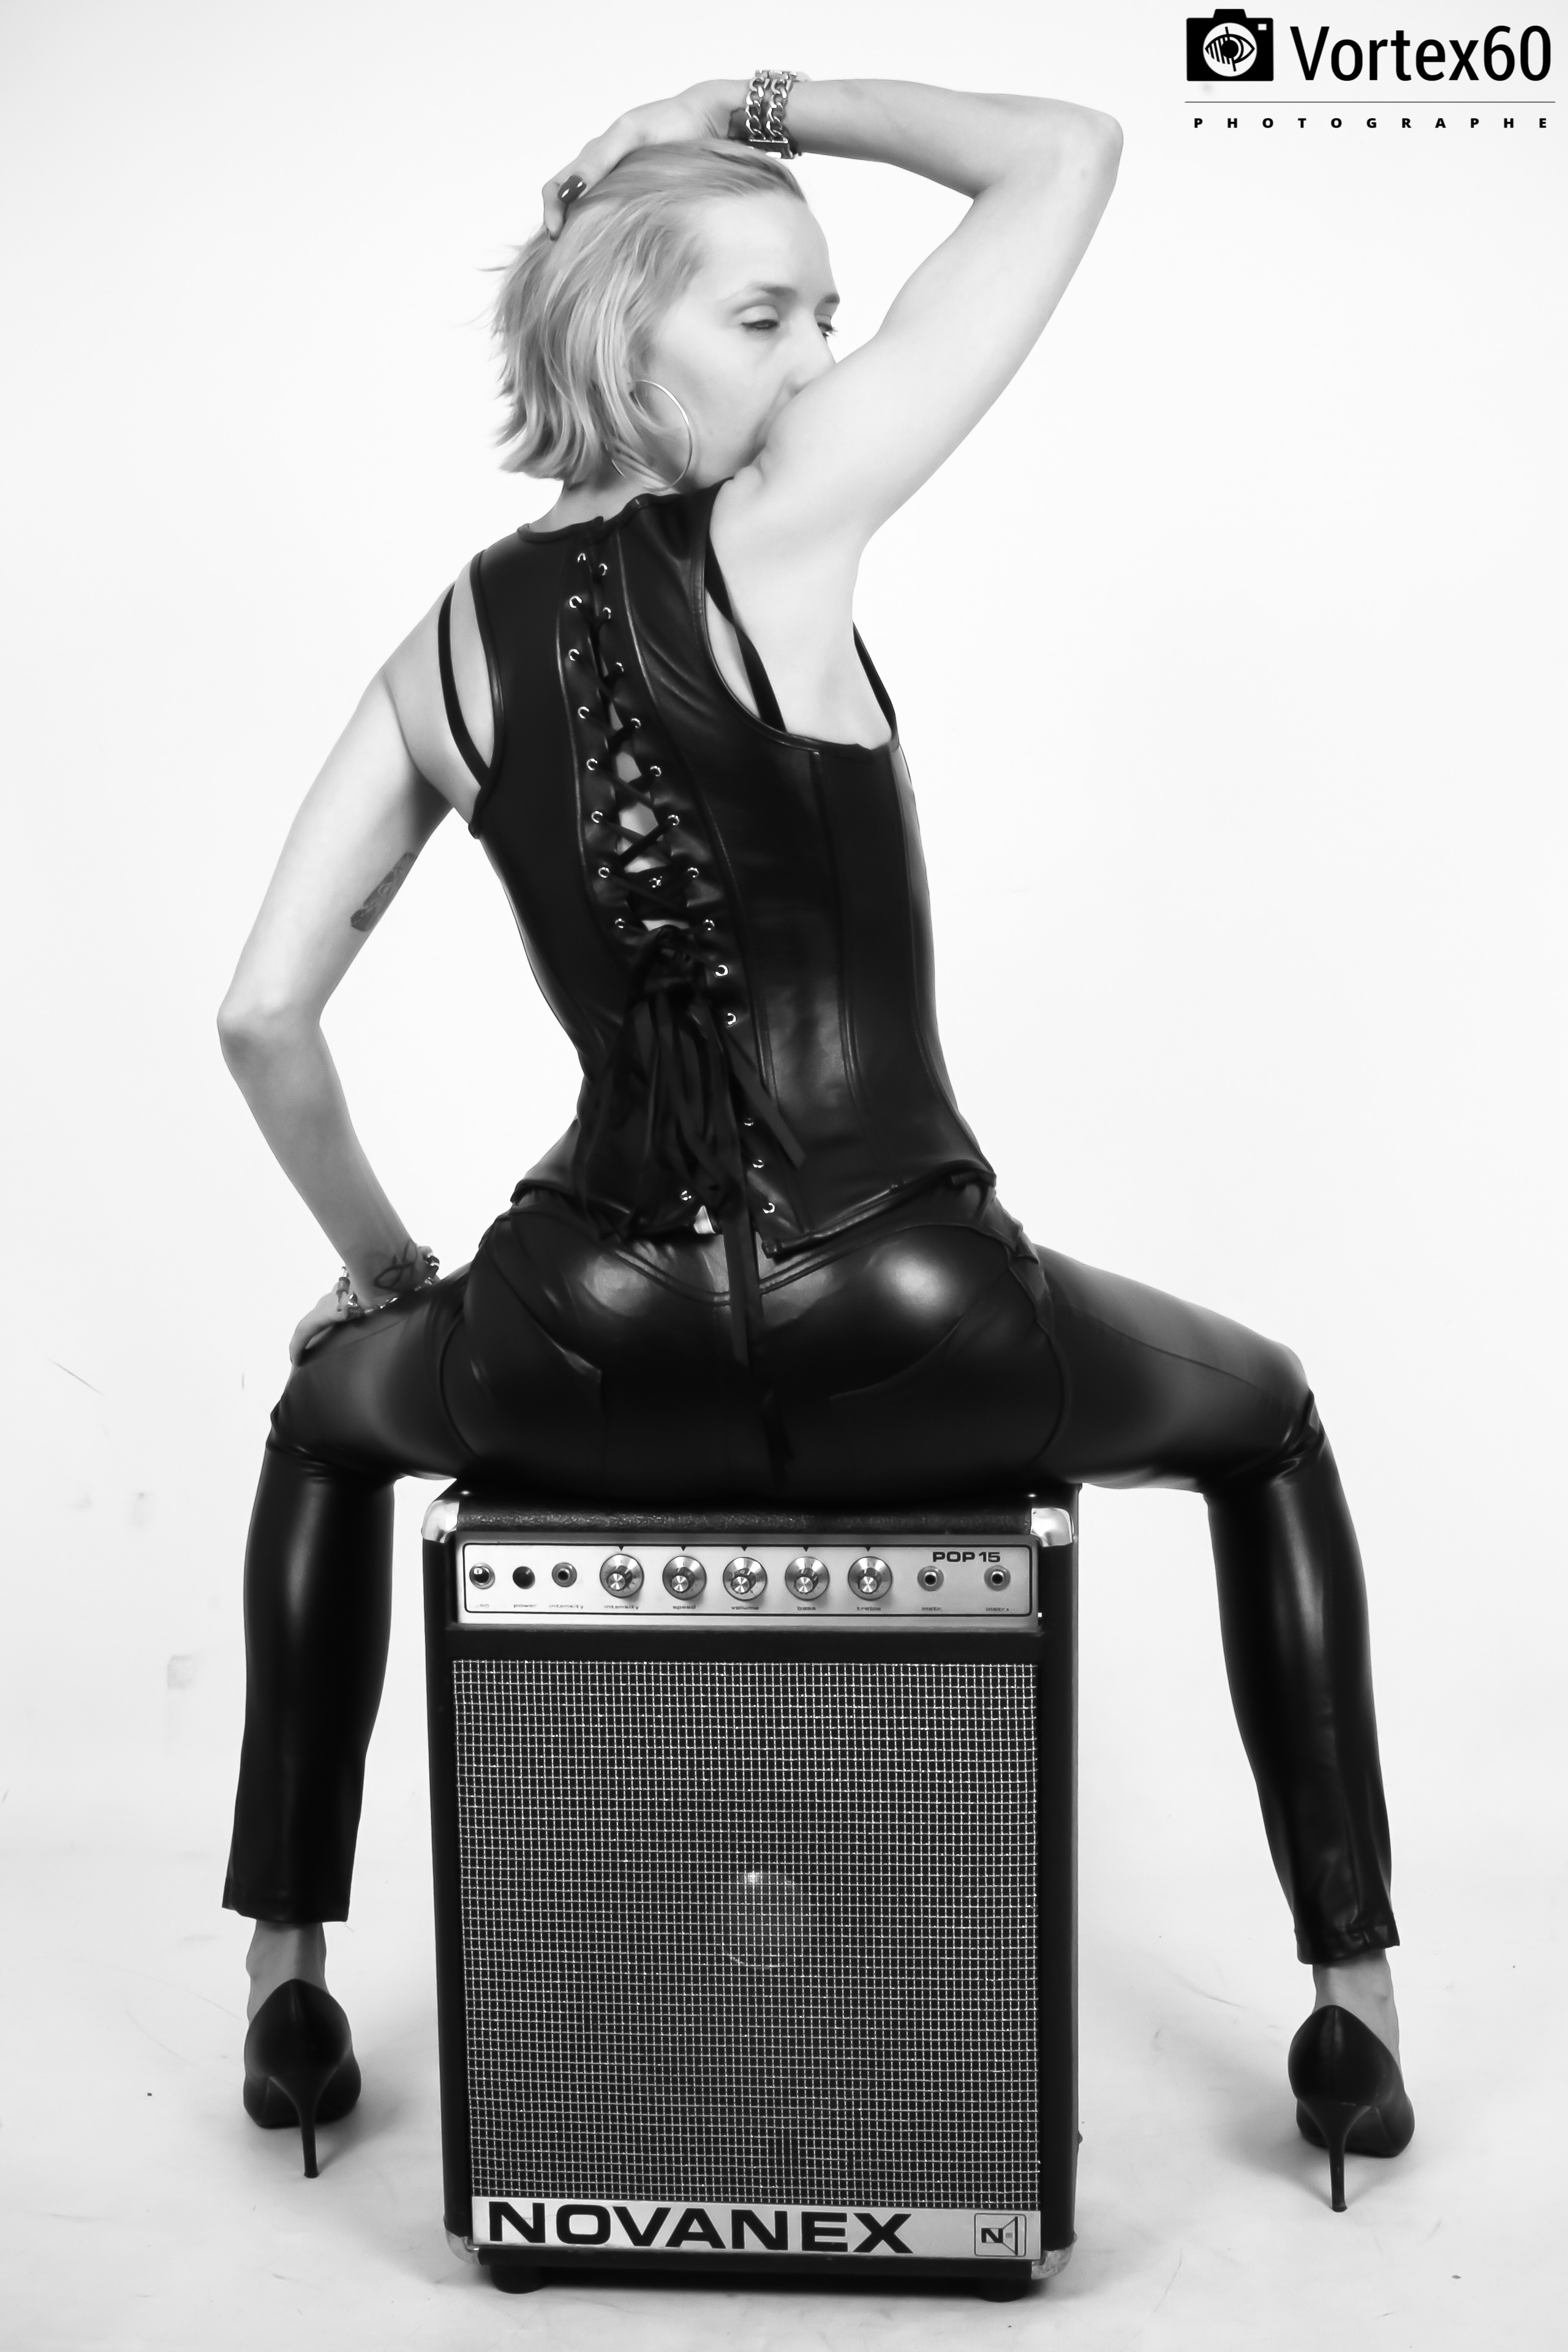 Girls and Rock - Miss Gonzo by Vortex60 Photographe